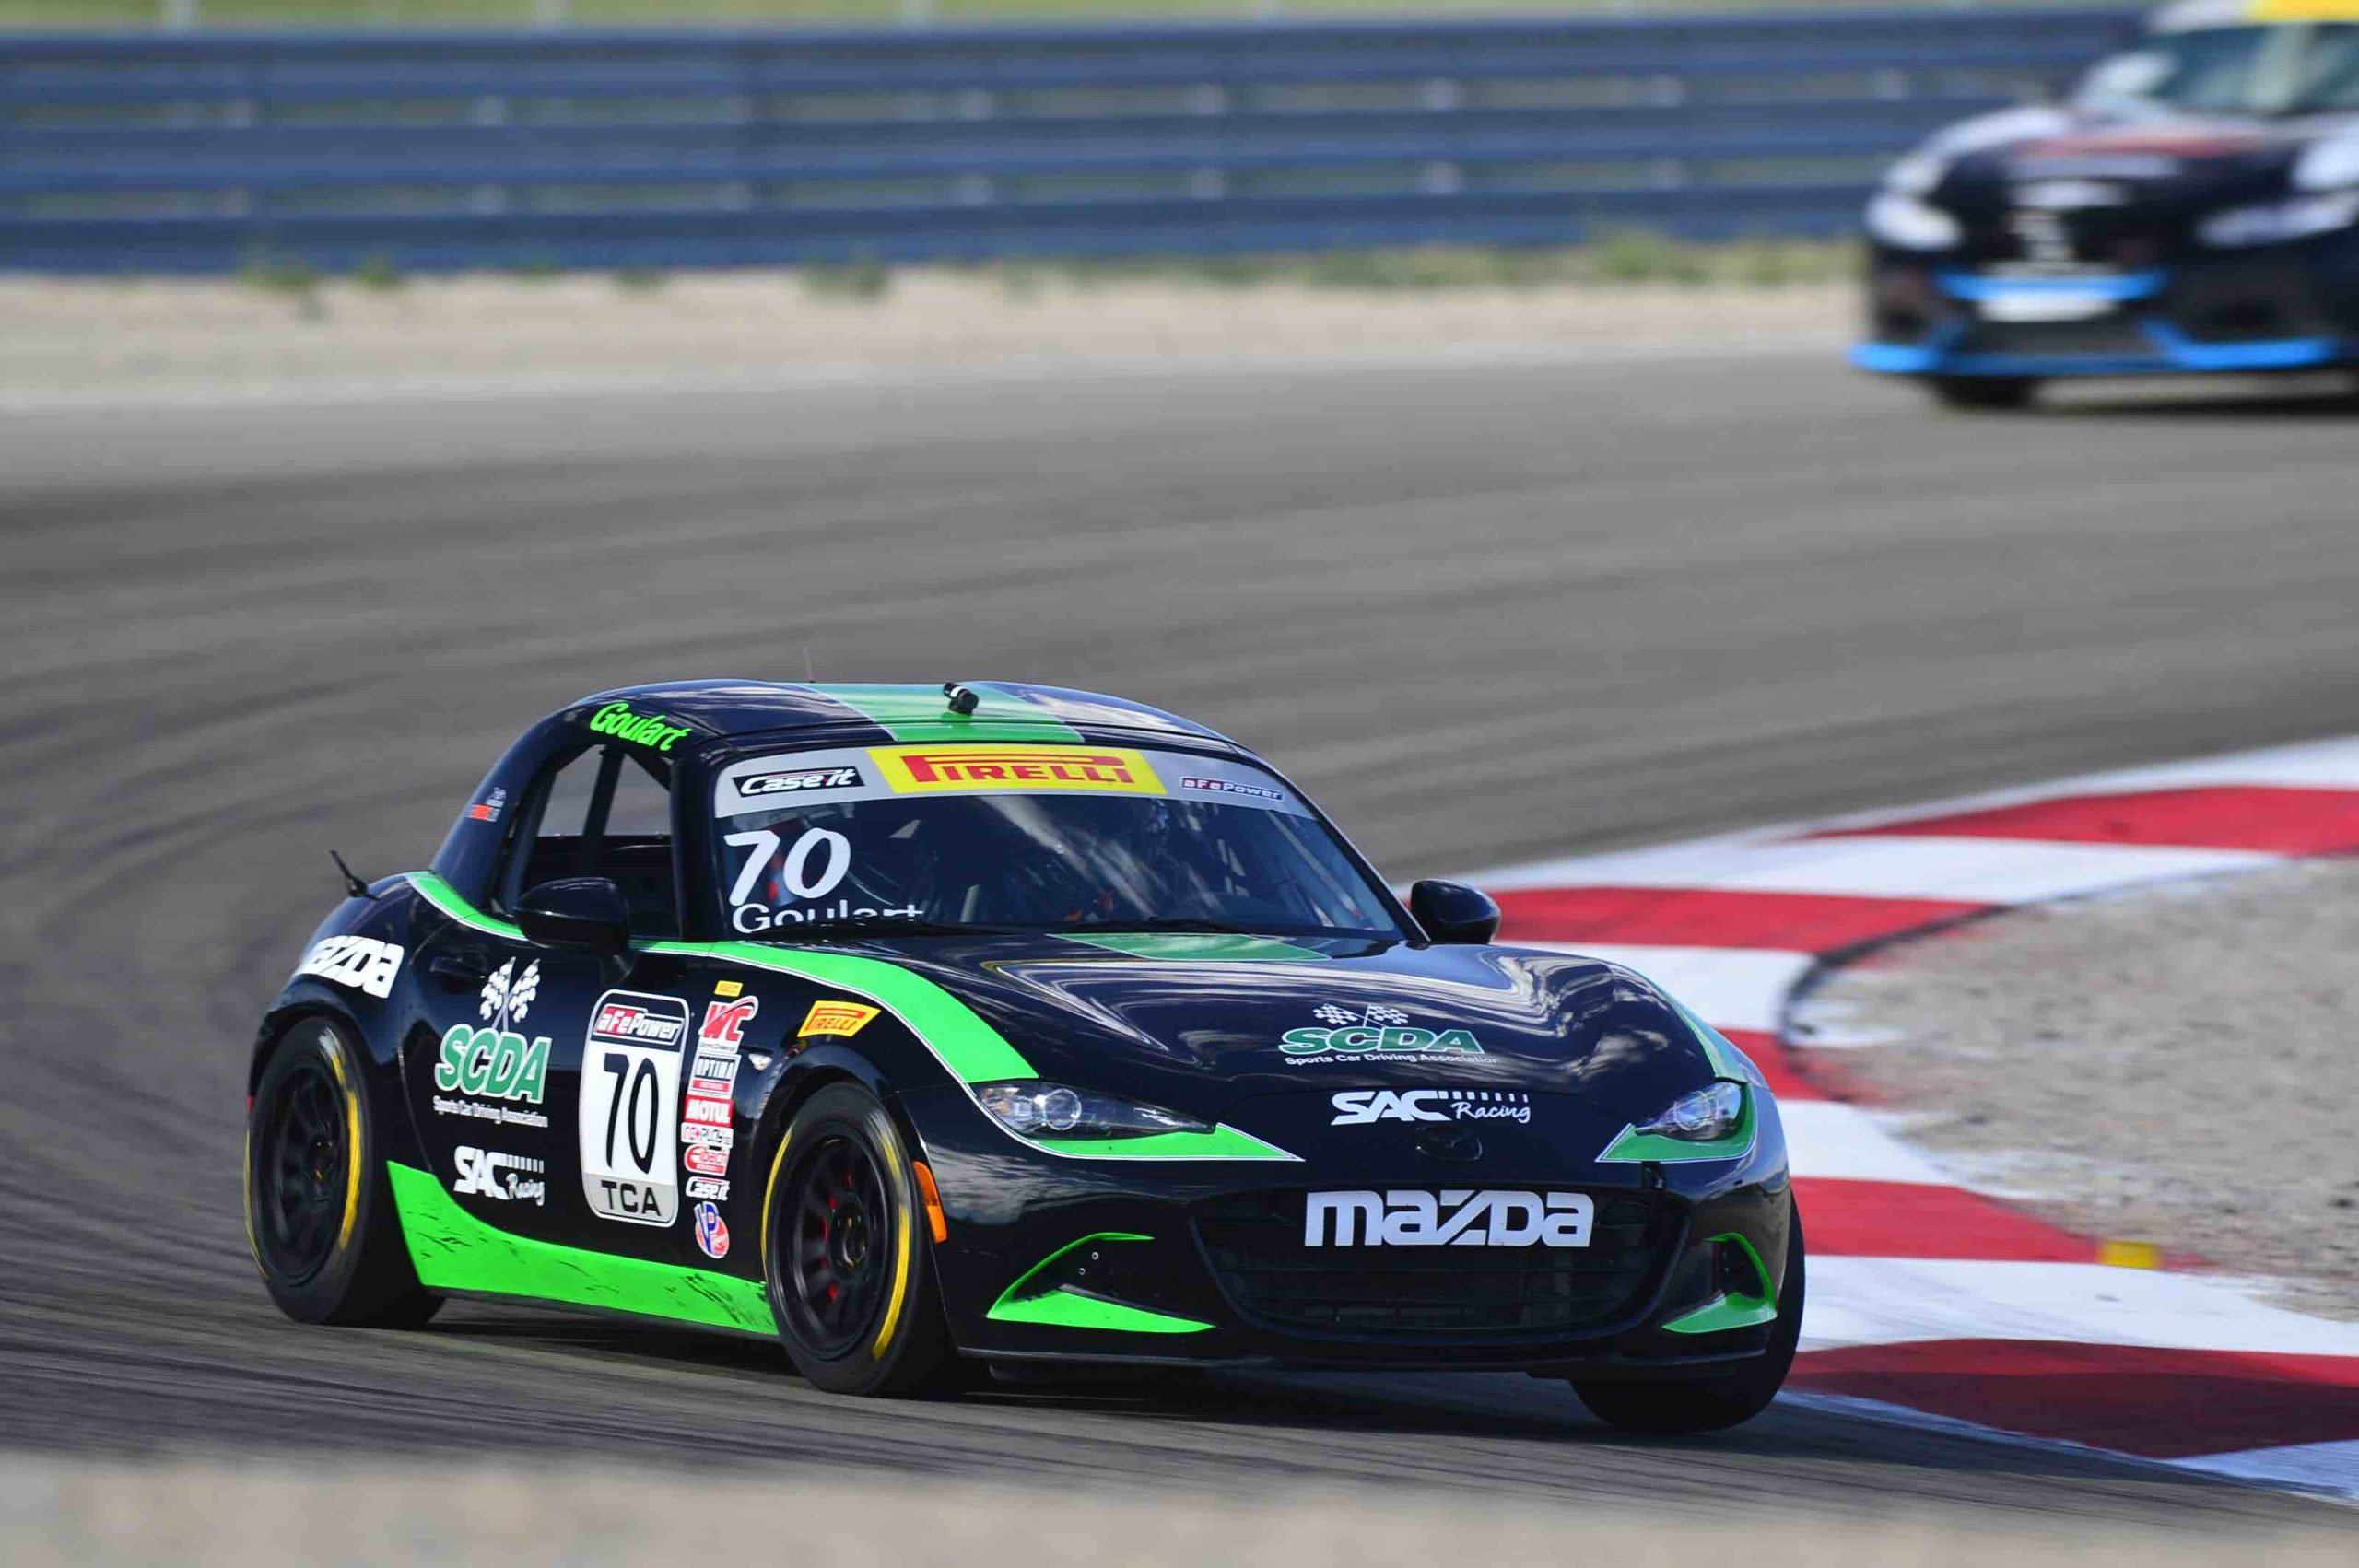 SCDA now welcomes the Global Mazda MX-5 Cup car to its fleet of rentals.